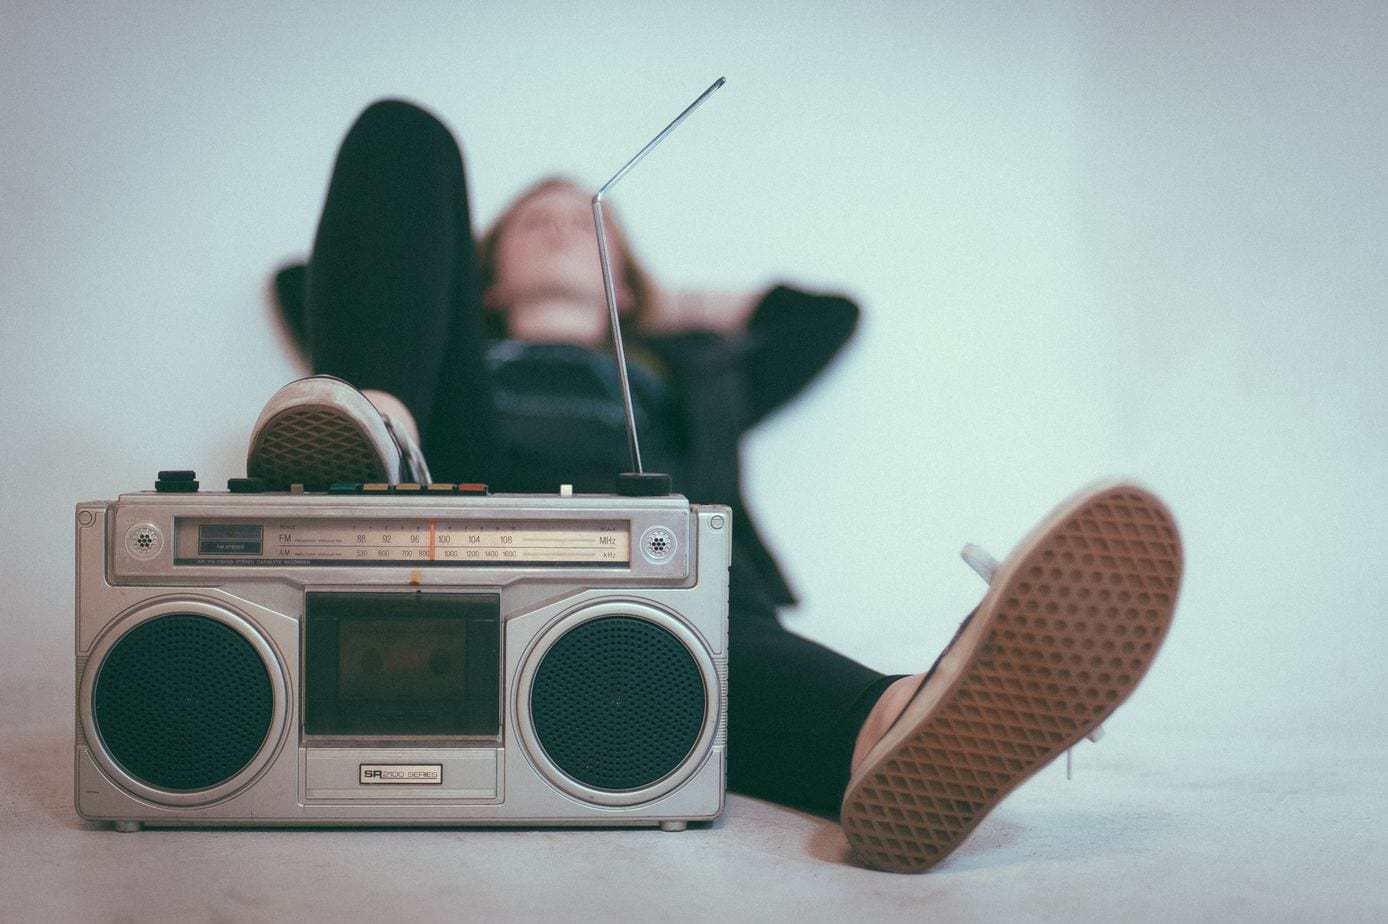 A blurry shot of a woman in sneakers reclining with her foot on a vintage sound system